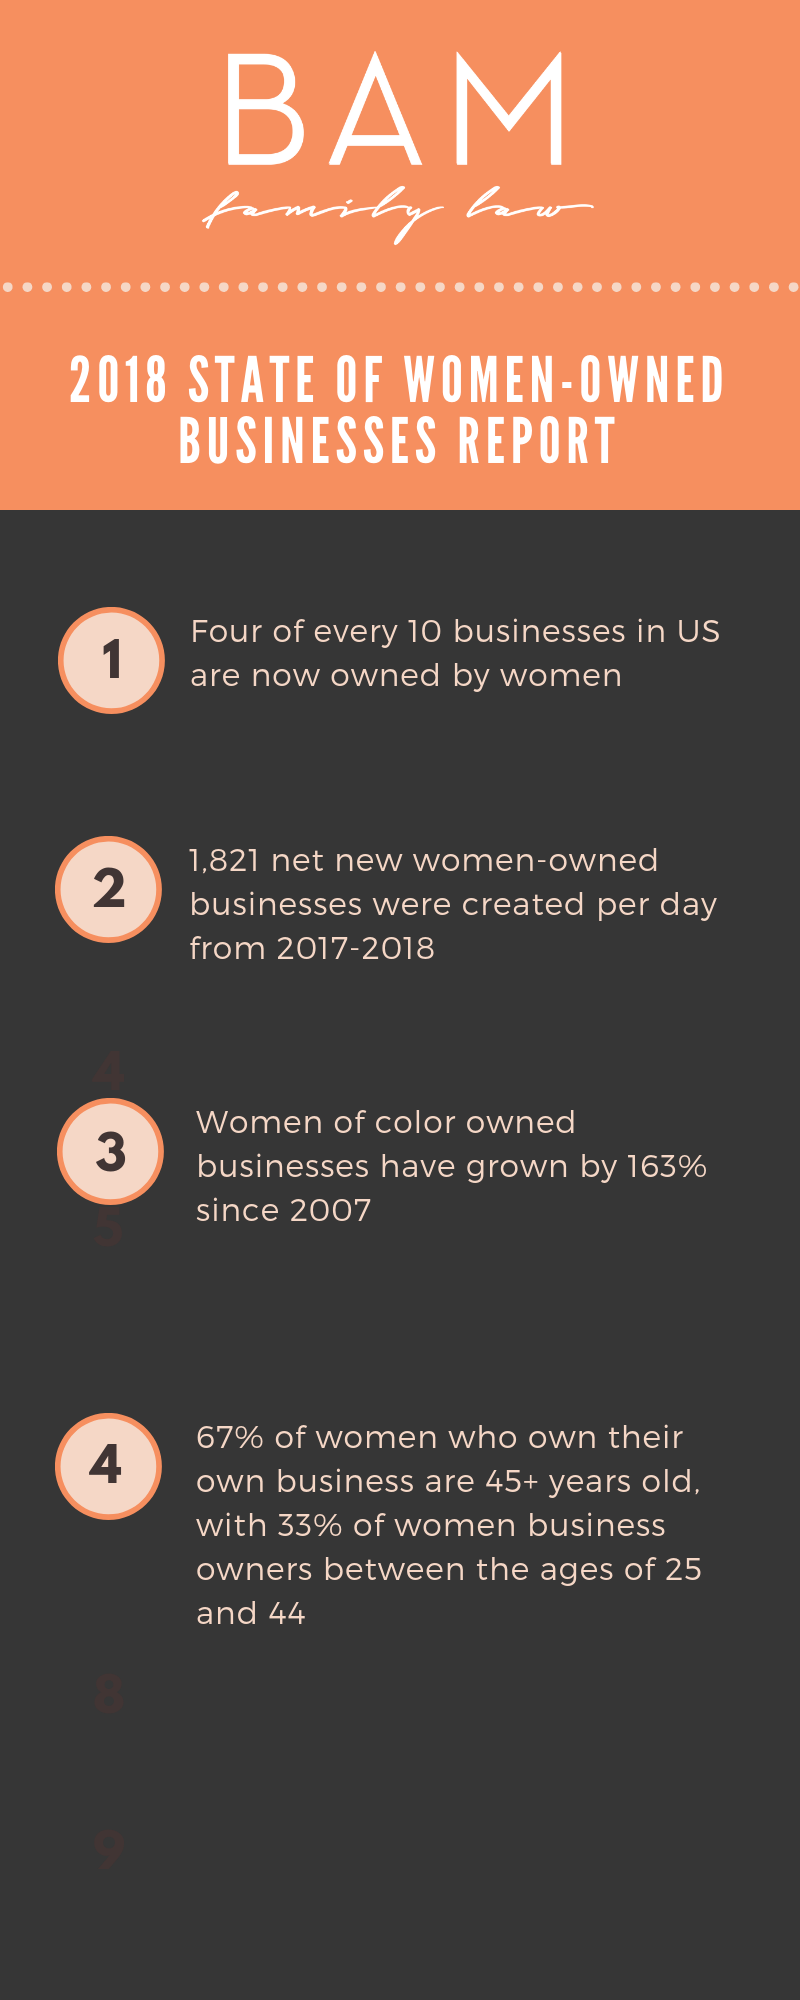 The State of Women-Owned Businesses in 2018